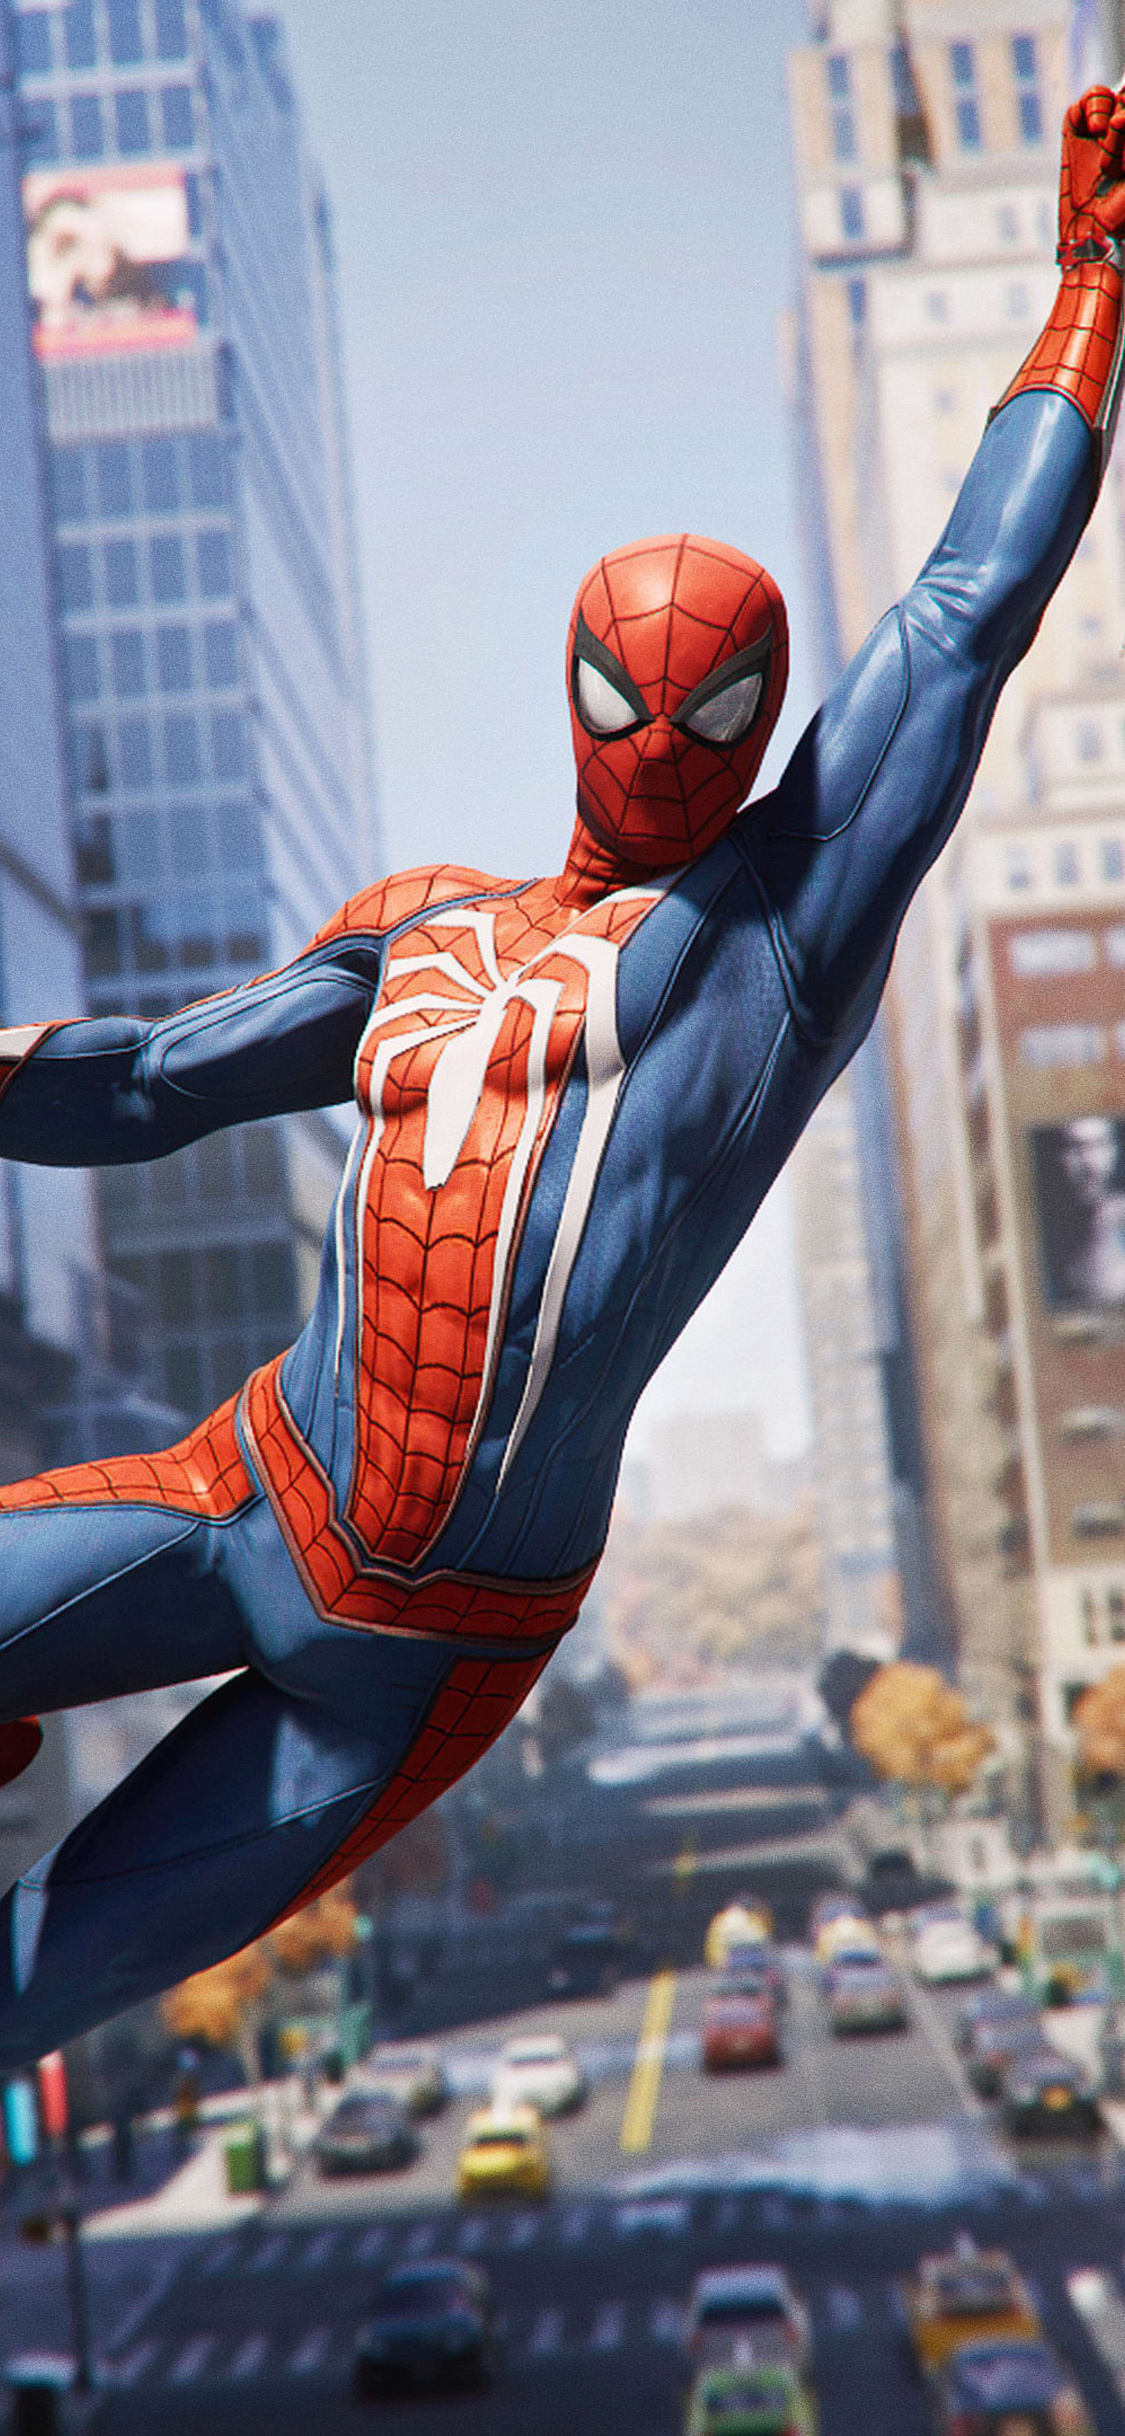 1125x2436 Spiderman Ps4 Pro 4k Iphone Xs Iphone 10 Iphone X Hd 4k